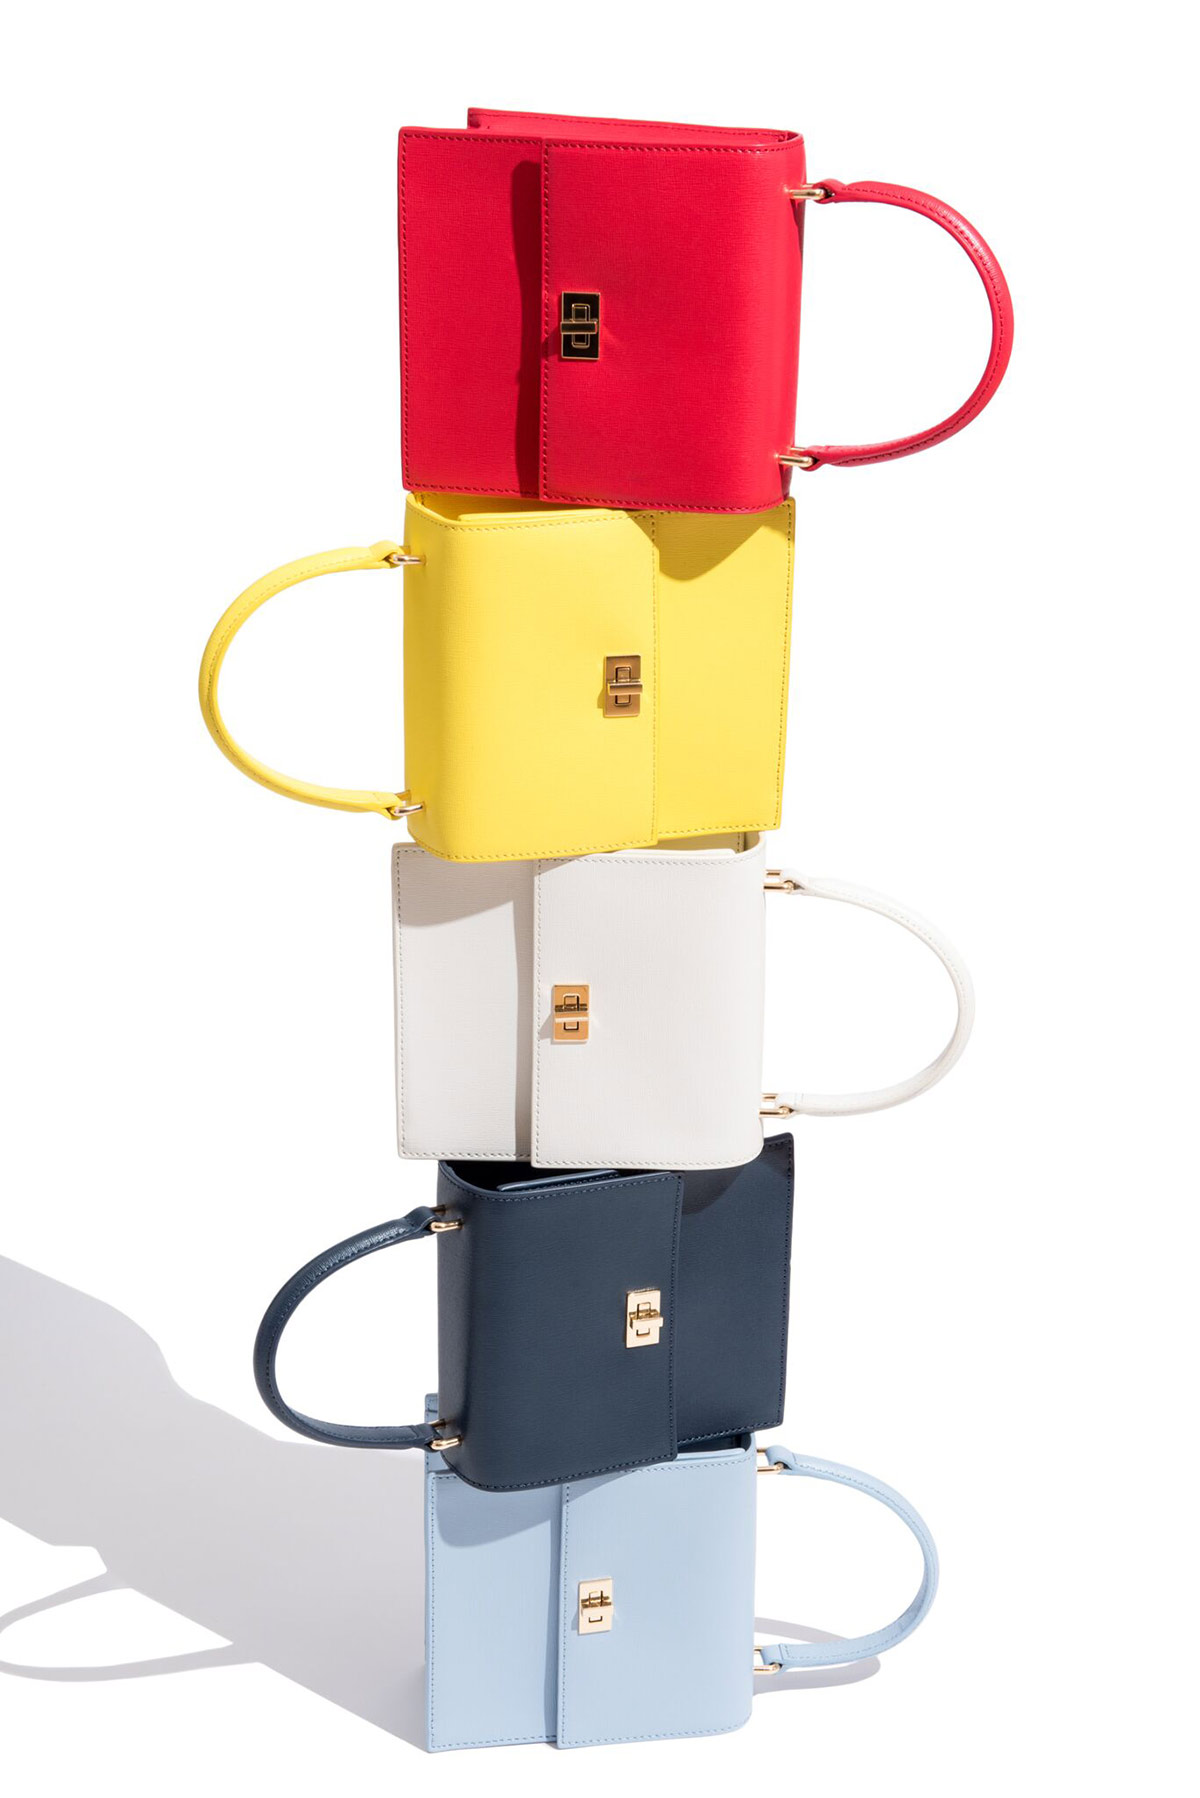 Neely and Chloe No. 19 mini lady bag stacked